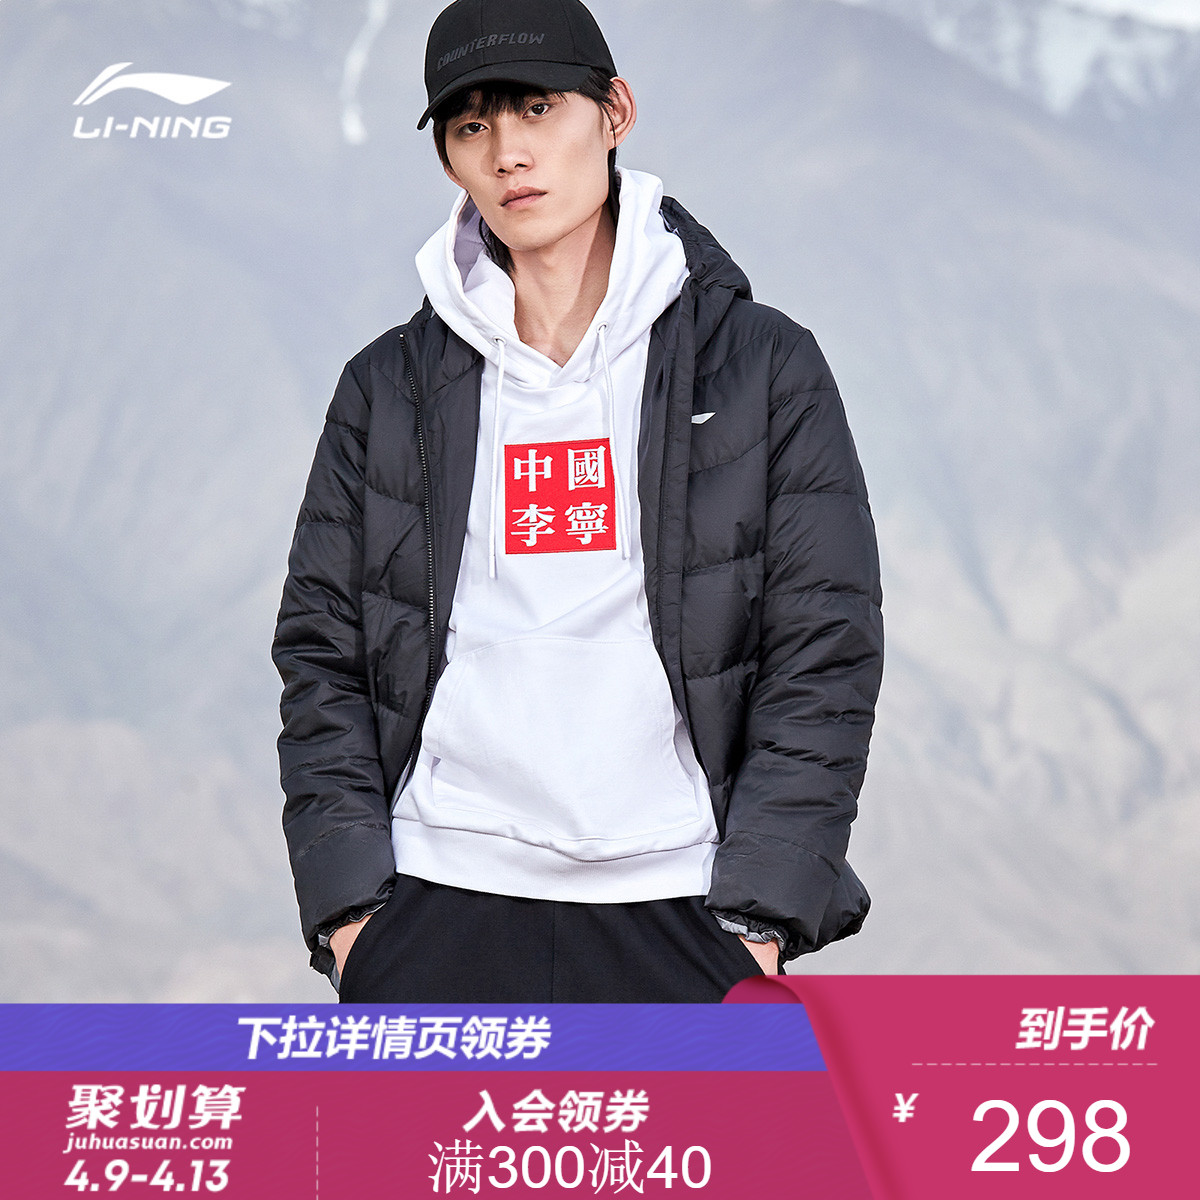 Ln Li Ning short down jacket men's new trend casual hooded top winter white down sportswear